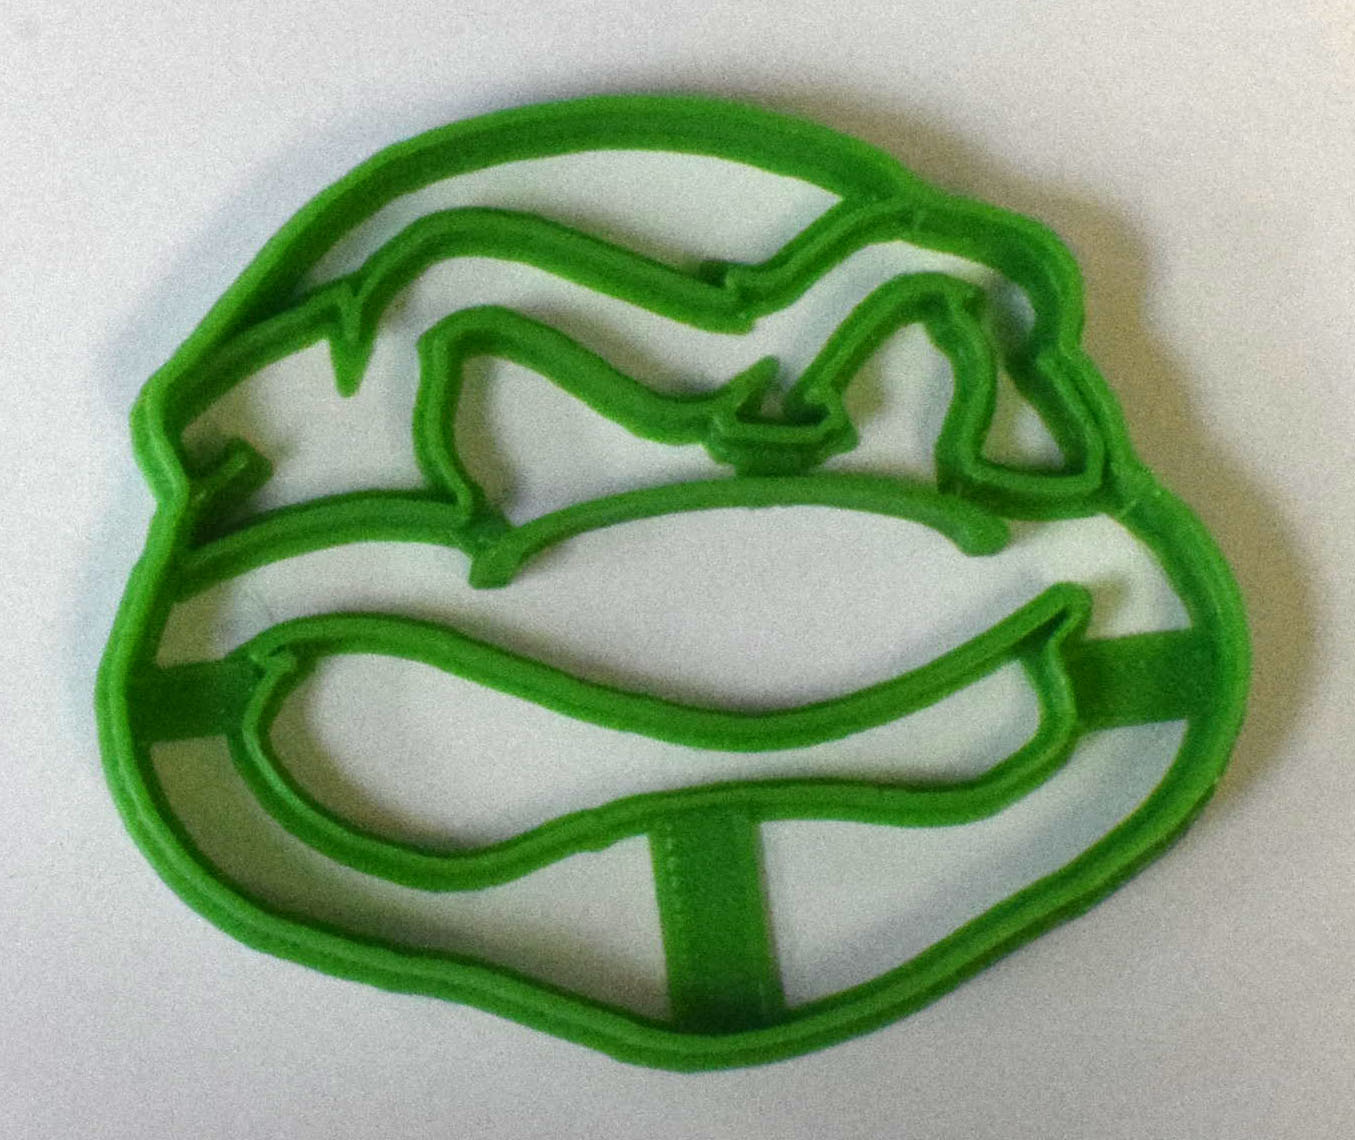 Primary image for TMNT Teenage Mutant Ninja Turtles Cartoon Cookie Cutter 3D Printed USA PR558